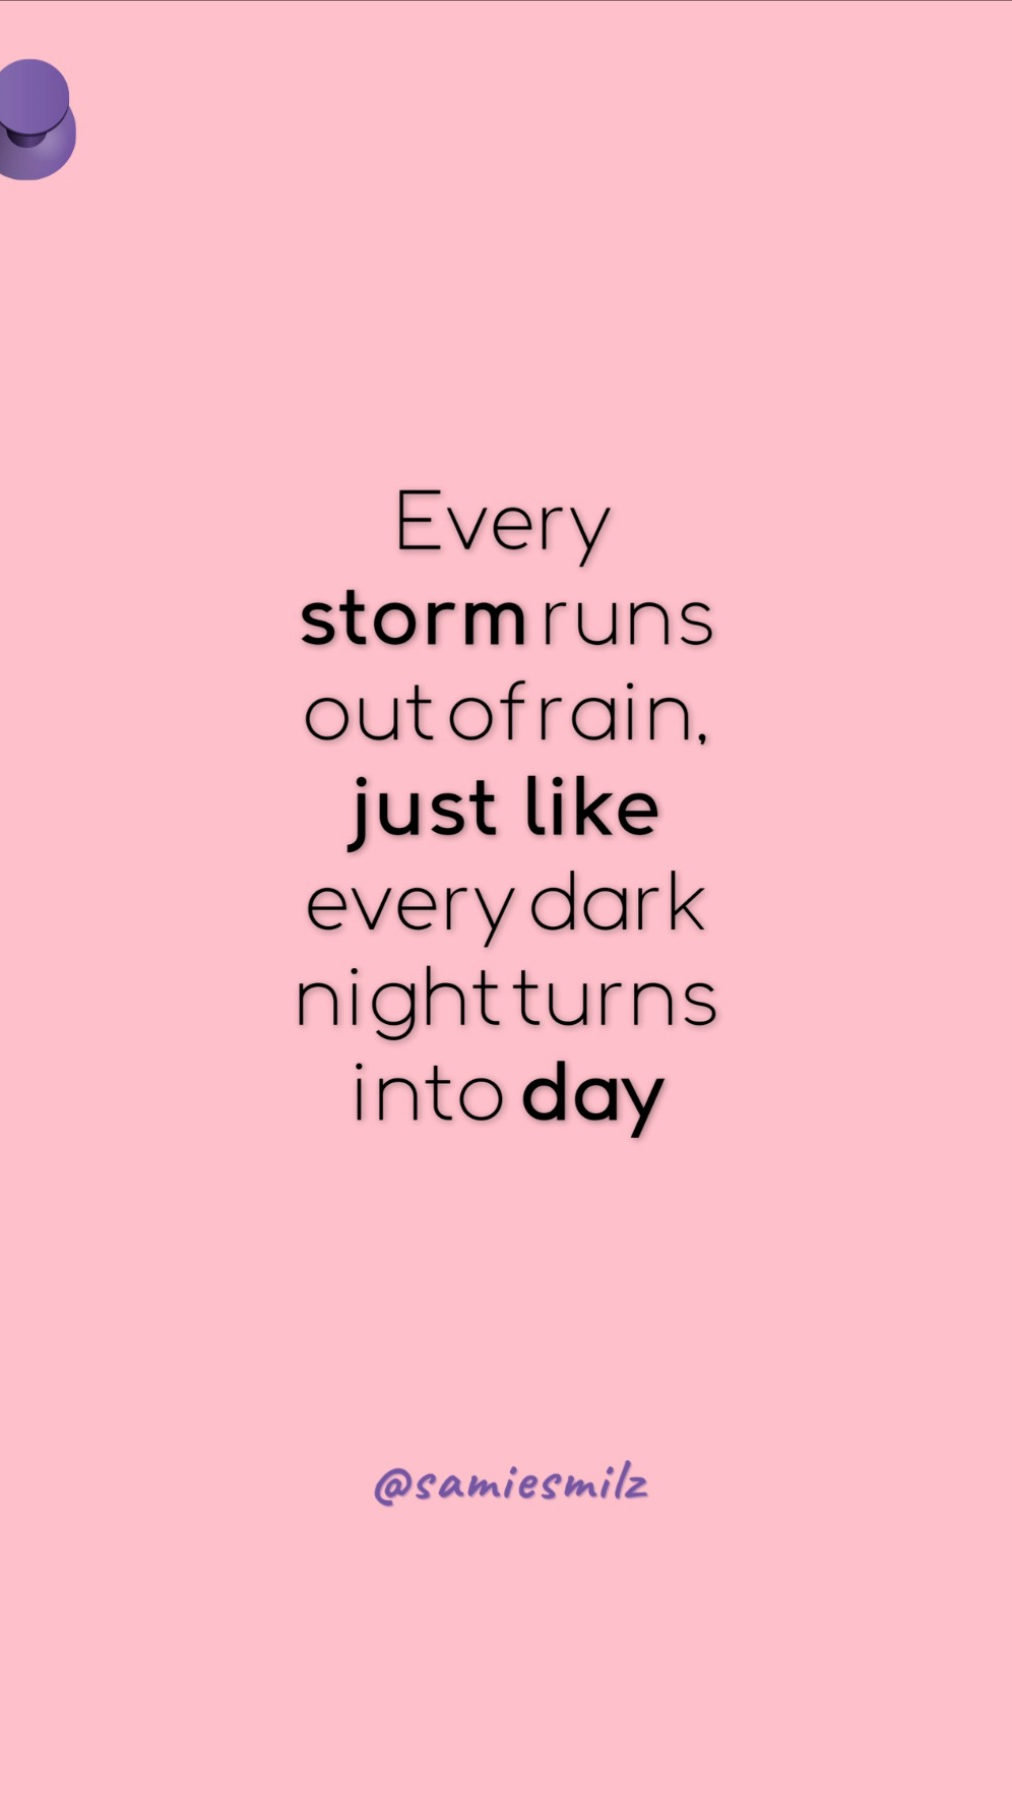 Every storm runs out of rain just like every dark night turns into day